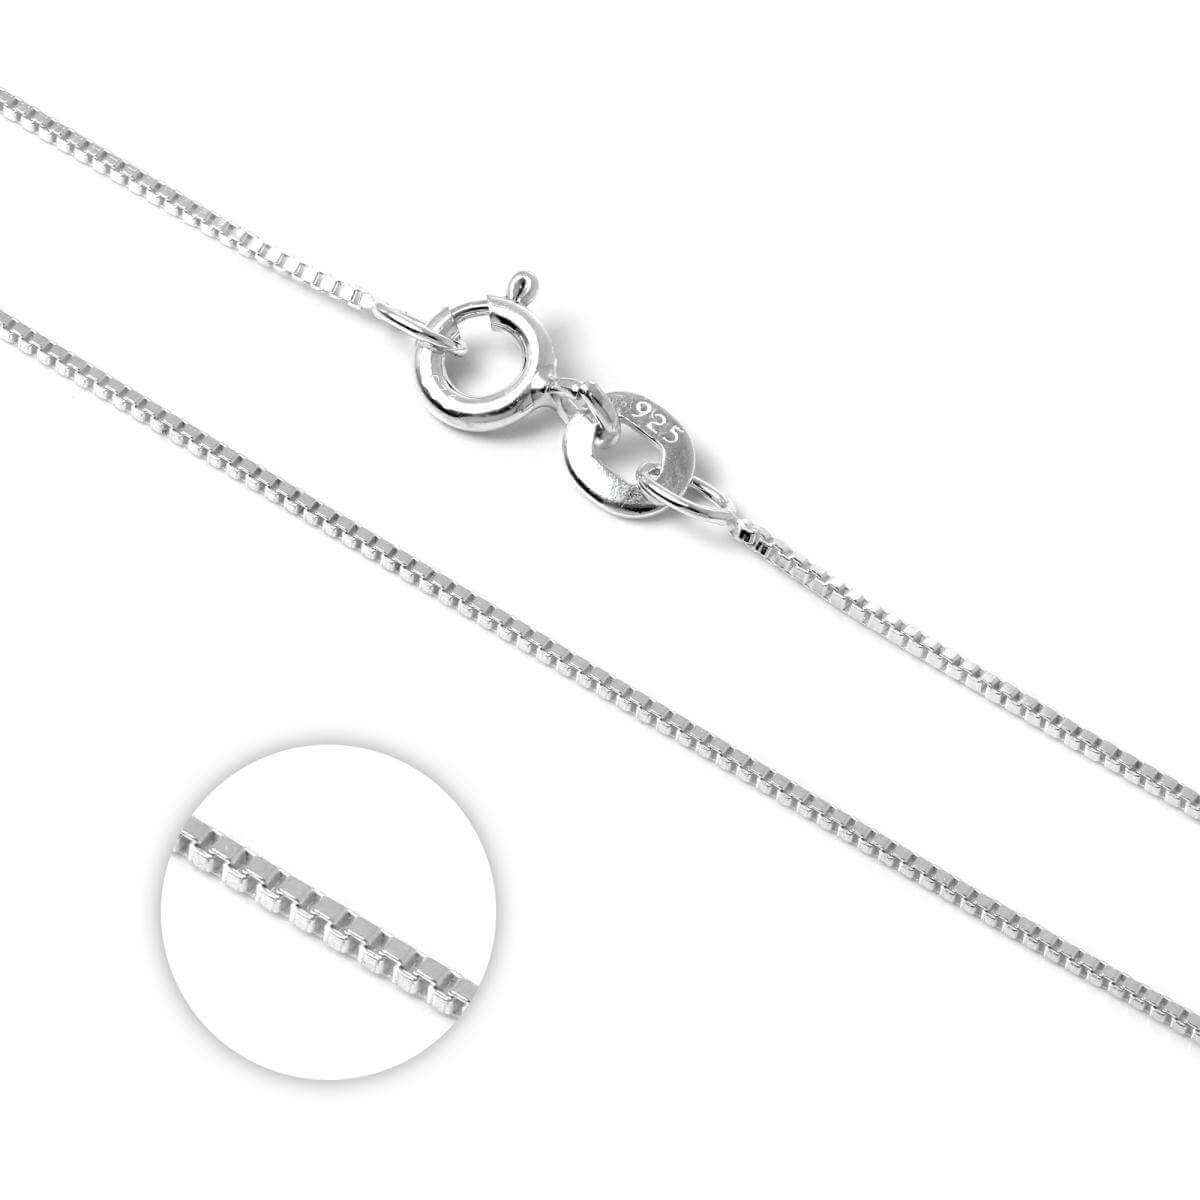 Sterling Silver Box Chain 14 - 22 Inches